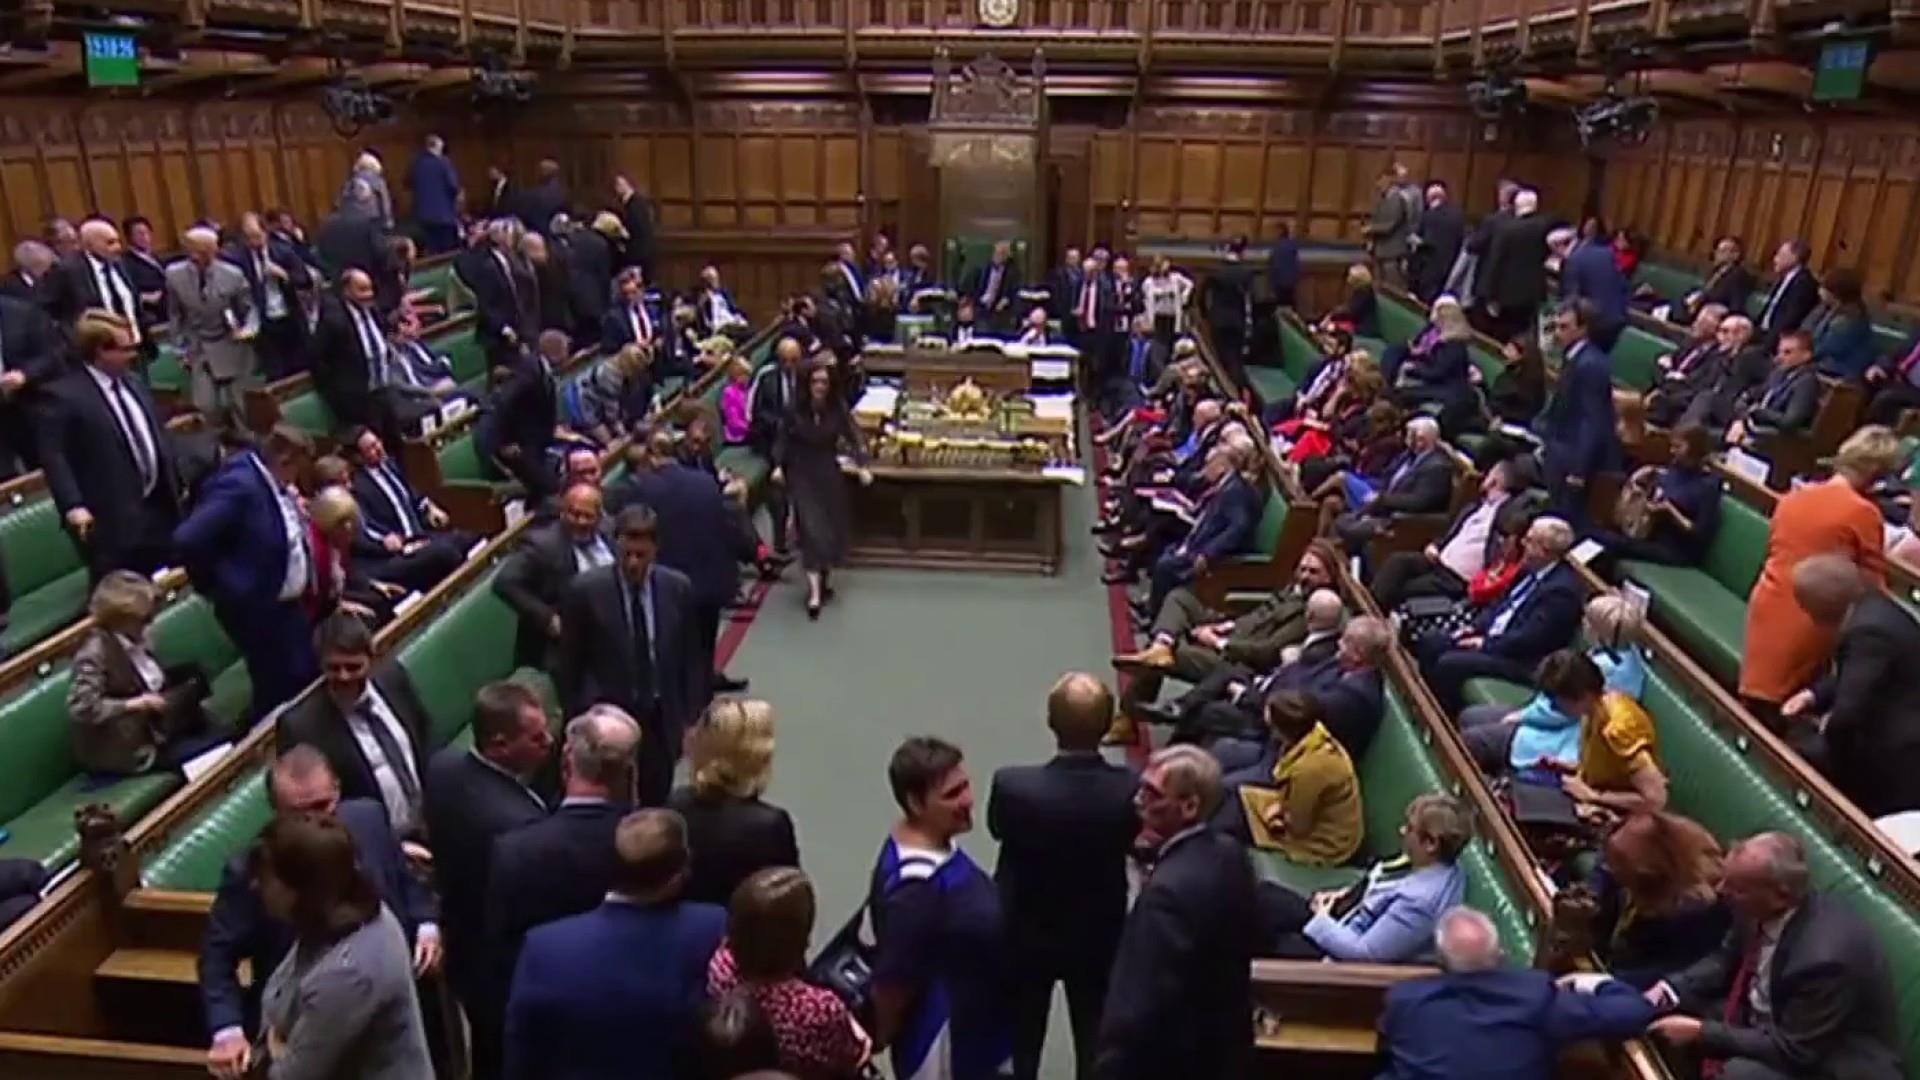 British Parliament suspended after Trump-backed PM defeated again